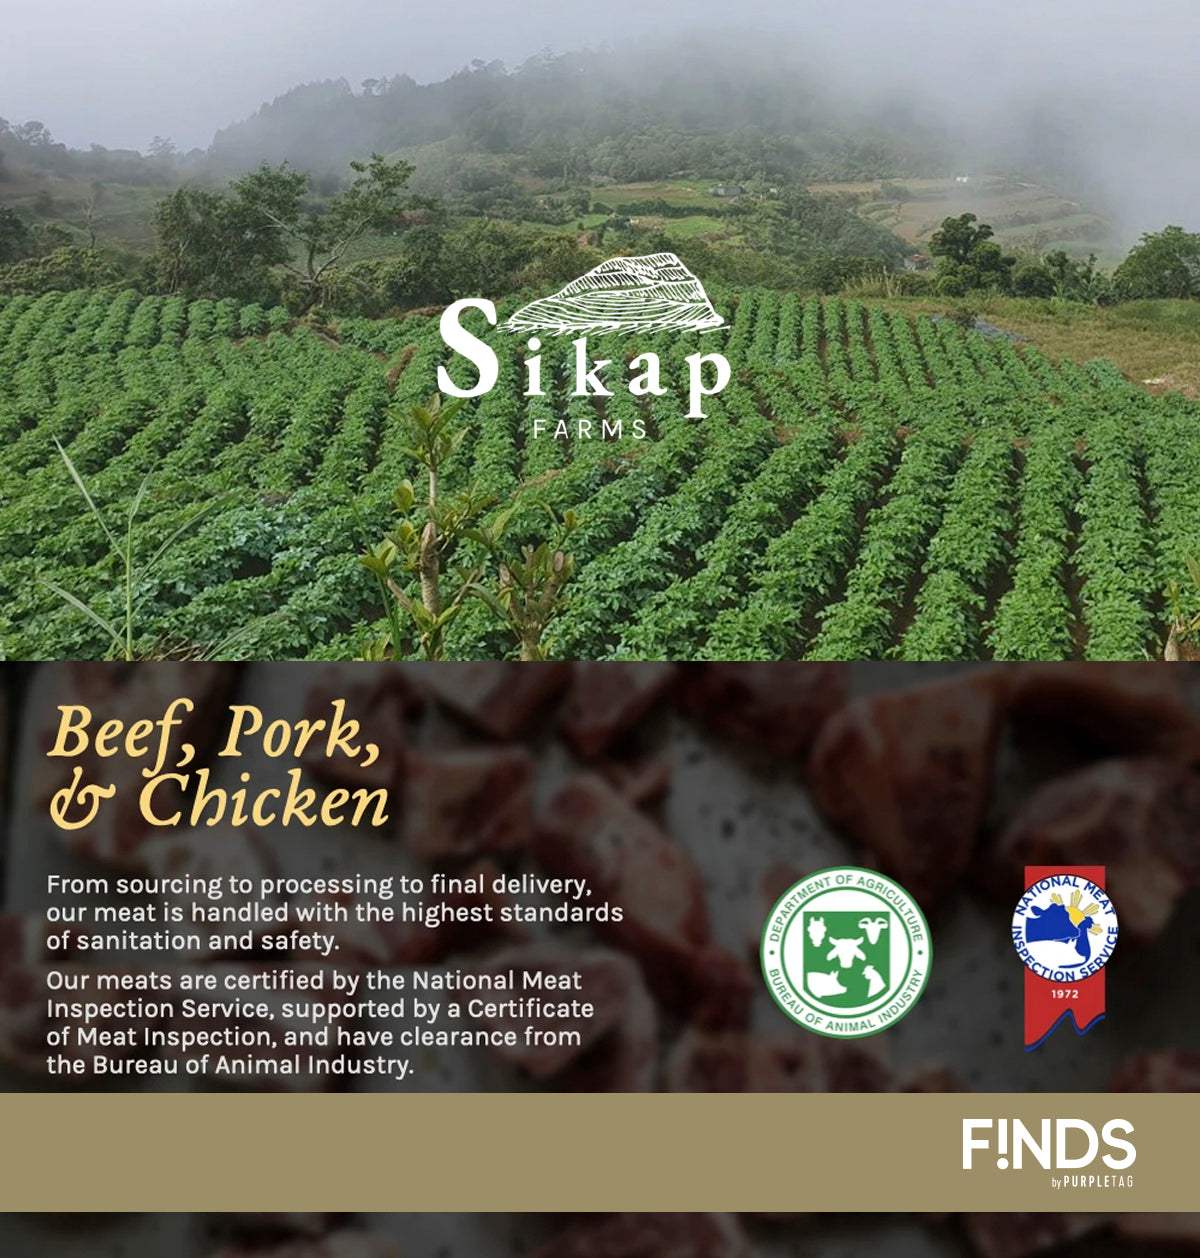 Sikap Farms | Online Meat Store | finds.purpletag.com